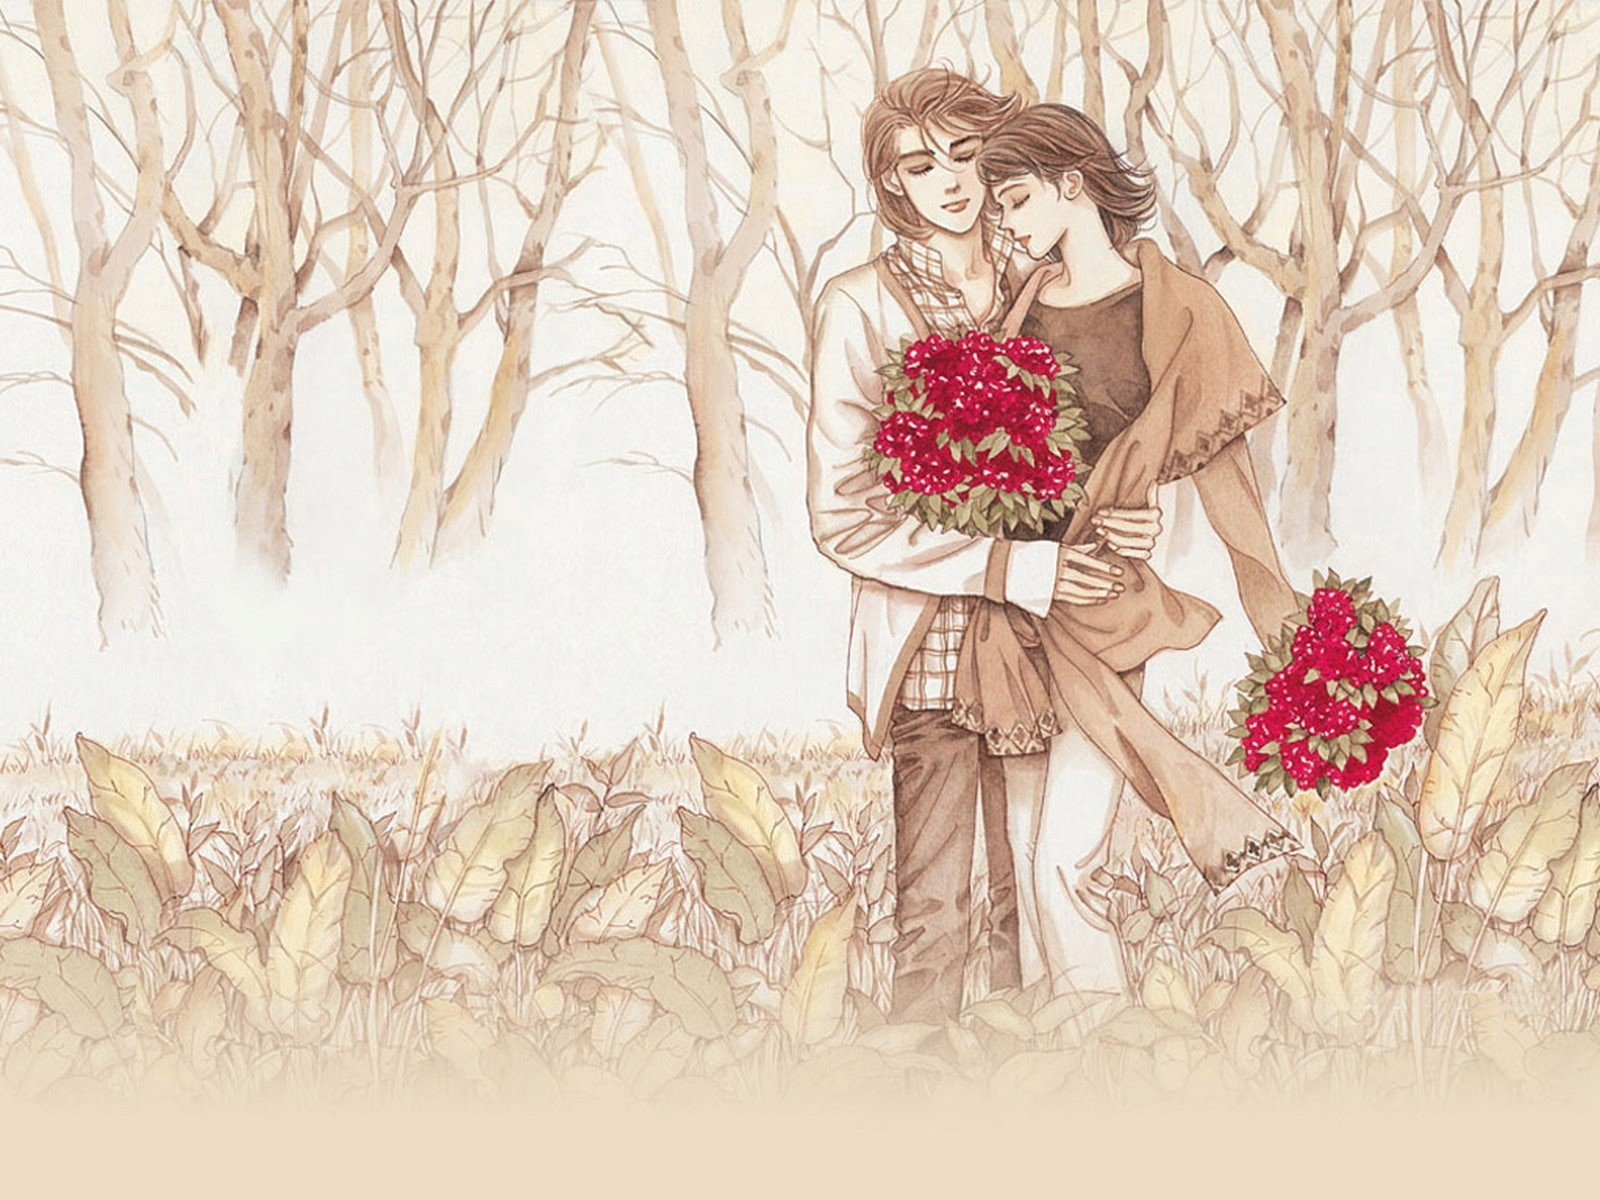 1600x1200 Romantic Couple Drawing With Red Flower Wallpaper Hd Wallpapers